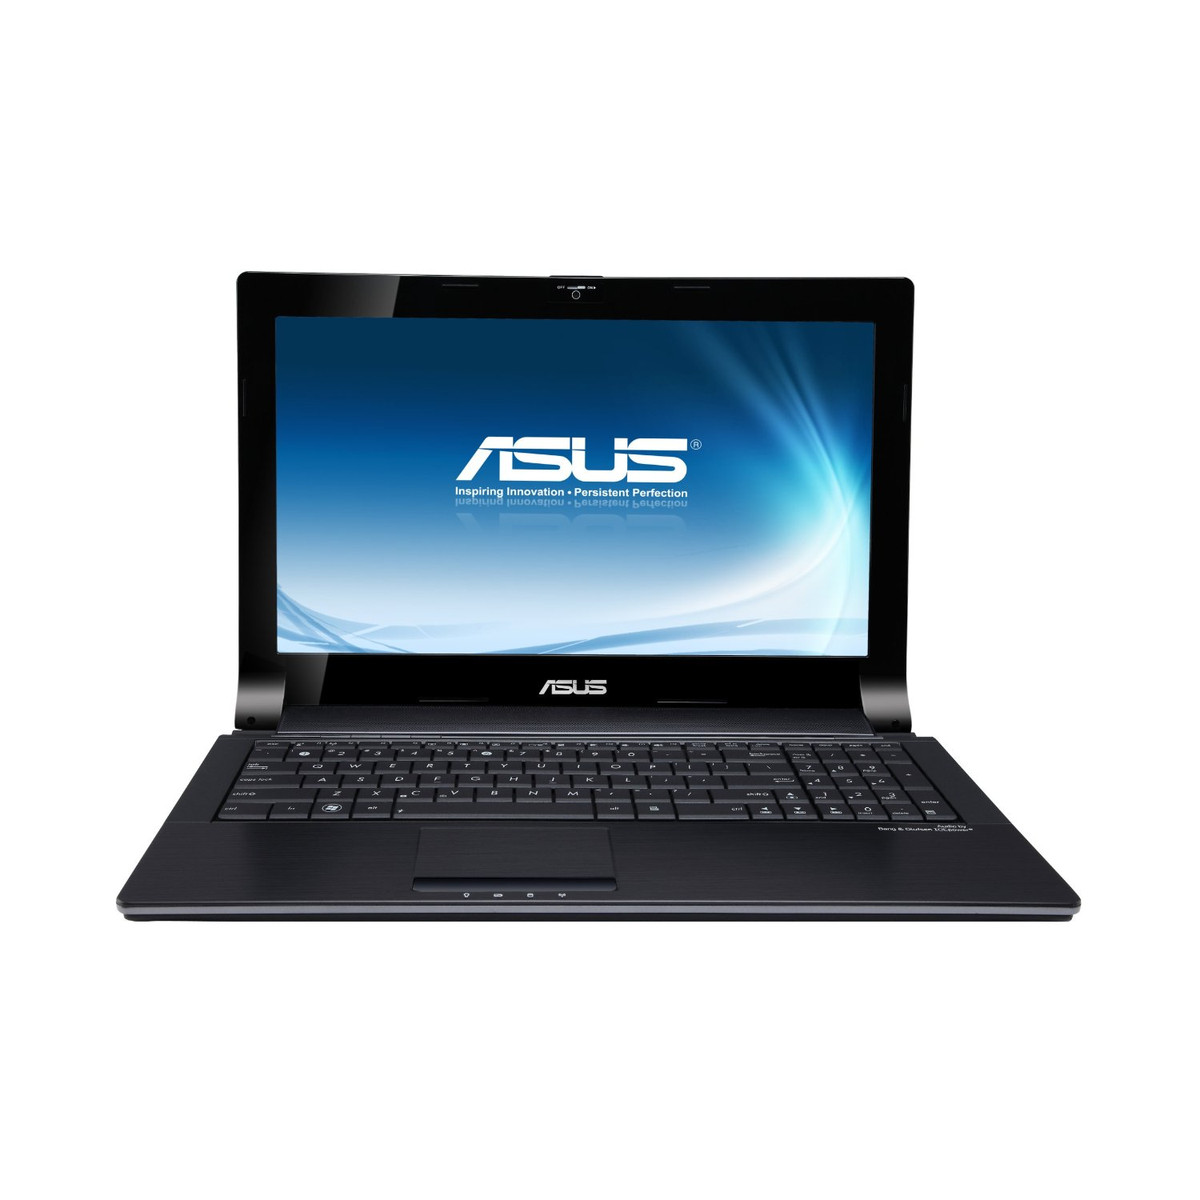 Asus N82jq A1 Notebookcheck Com Externe Tests - Asus n53sv xv1 notebookcheck nl